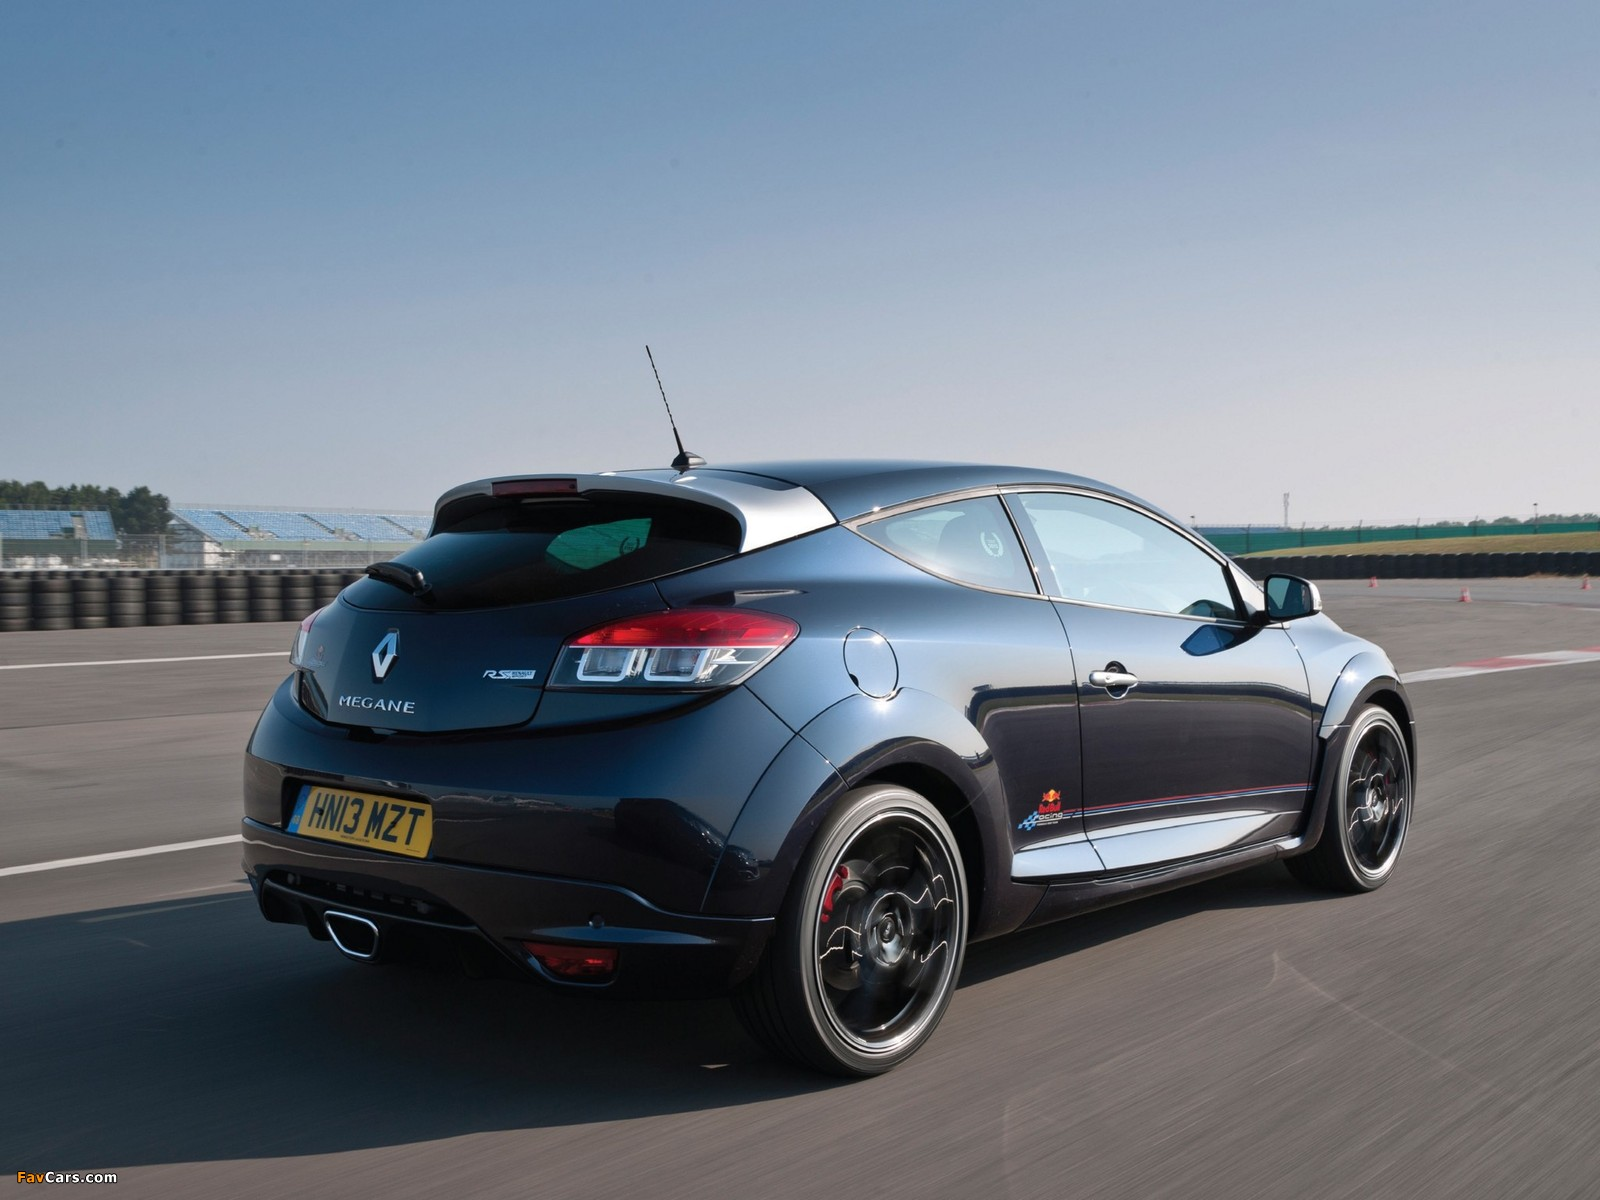 Renault Mégane Renaultsport 265 Red Bull Racing RB8 2013 pictures (1600 x 1200)